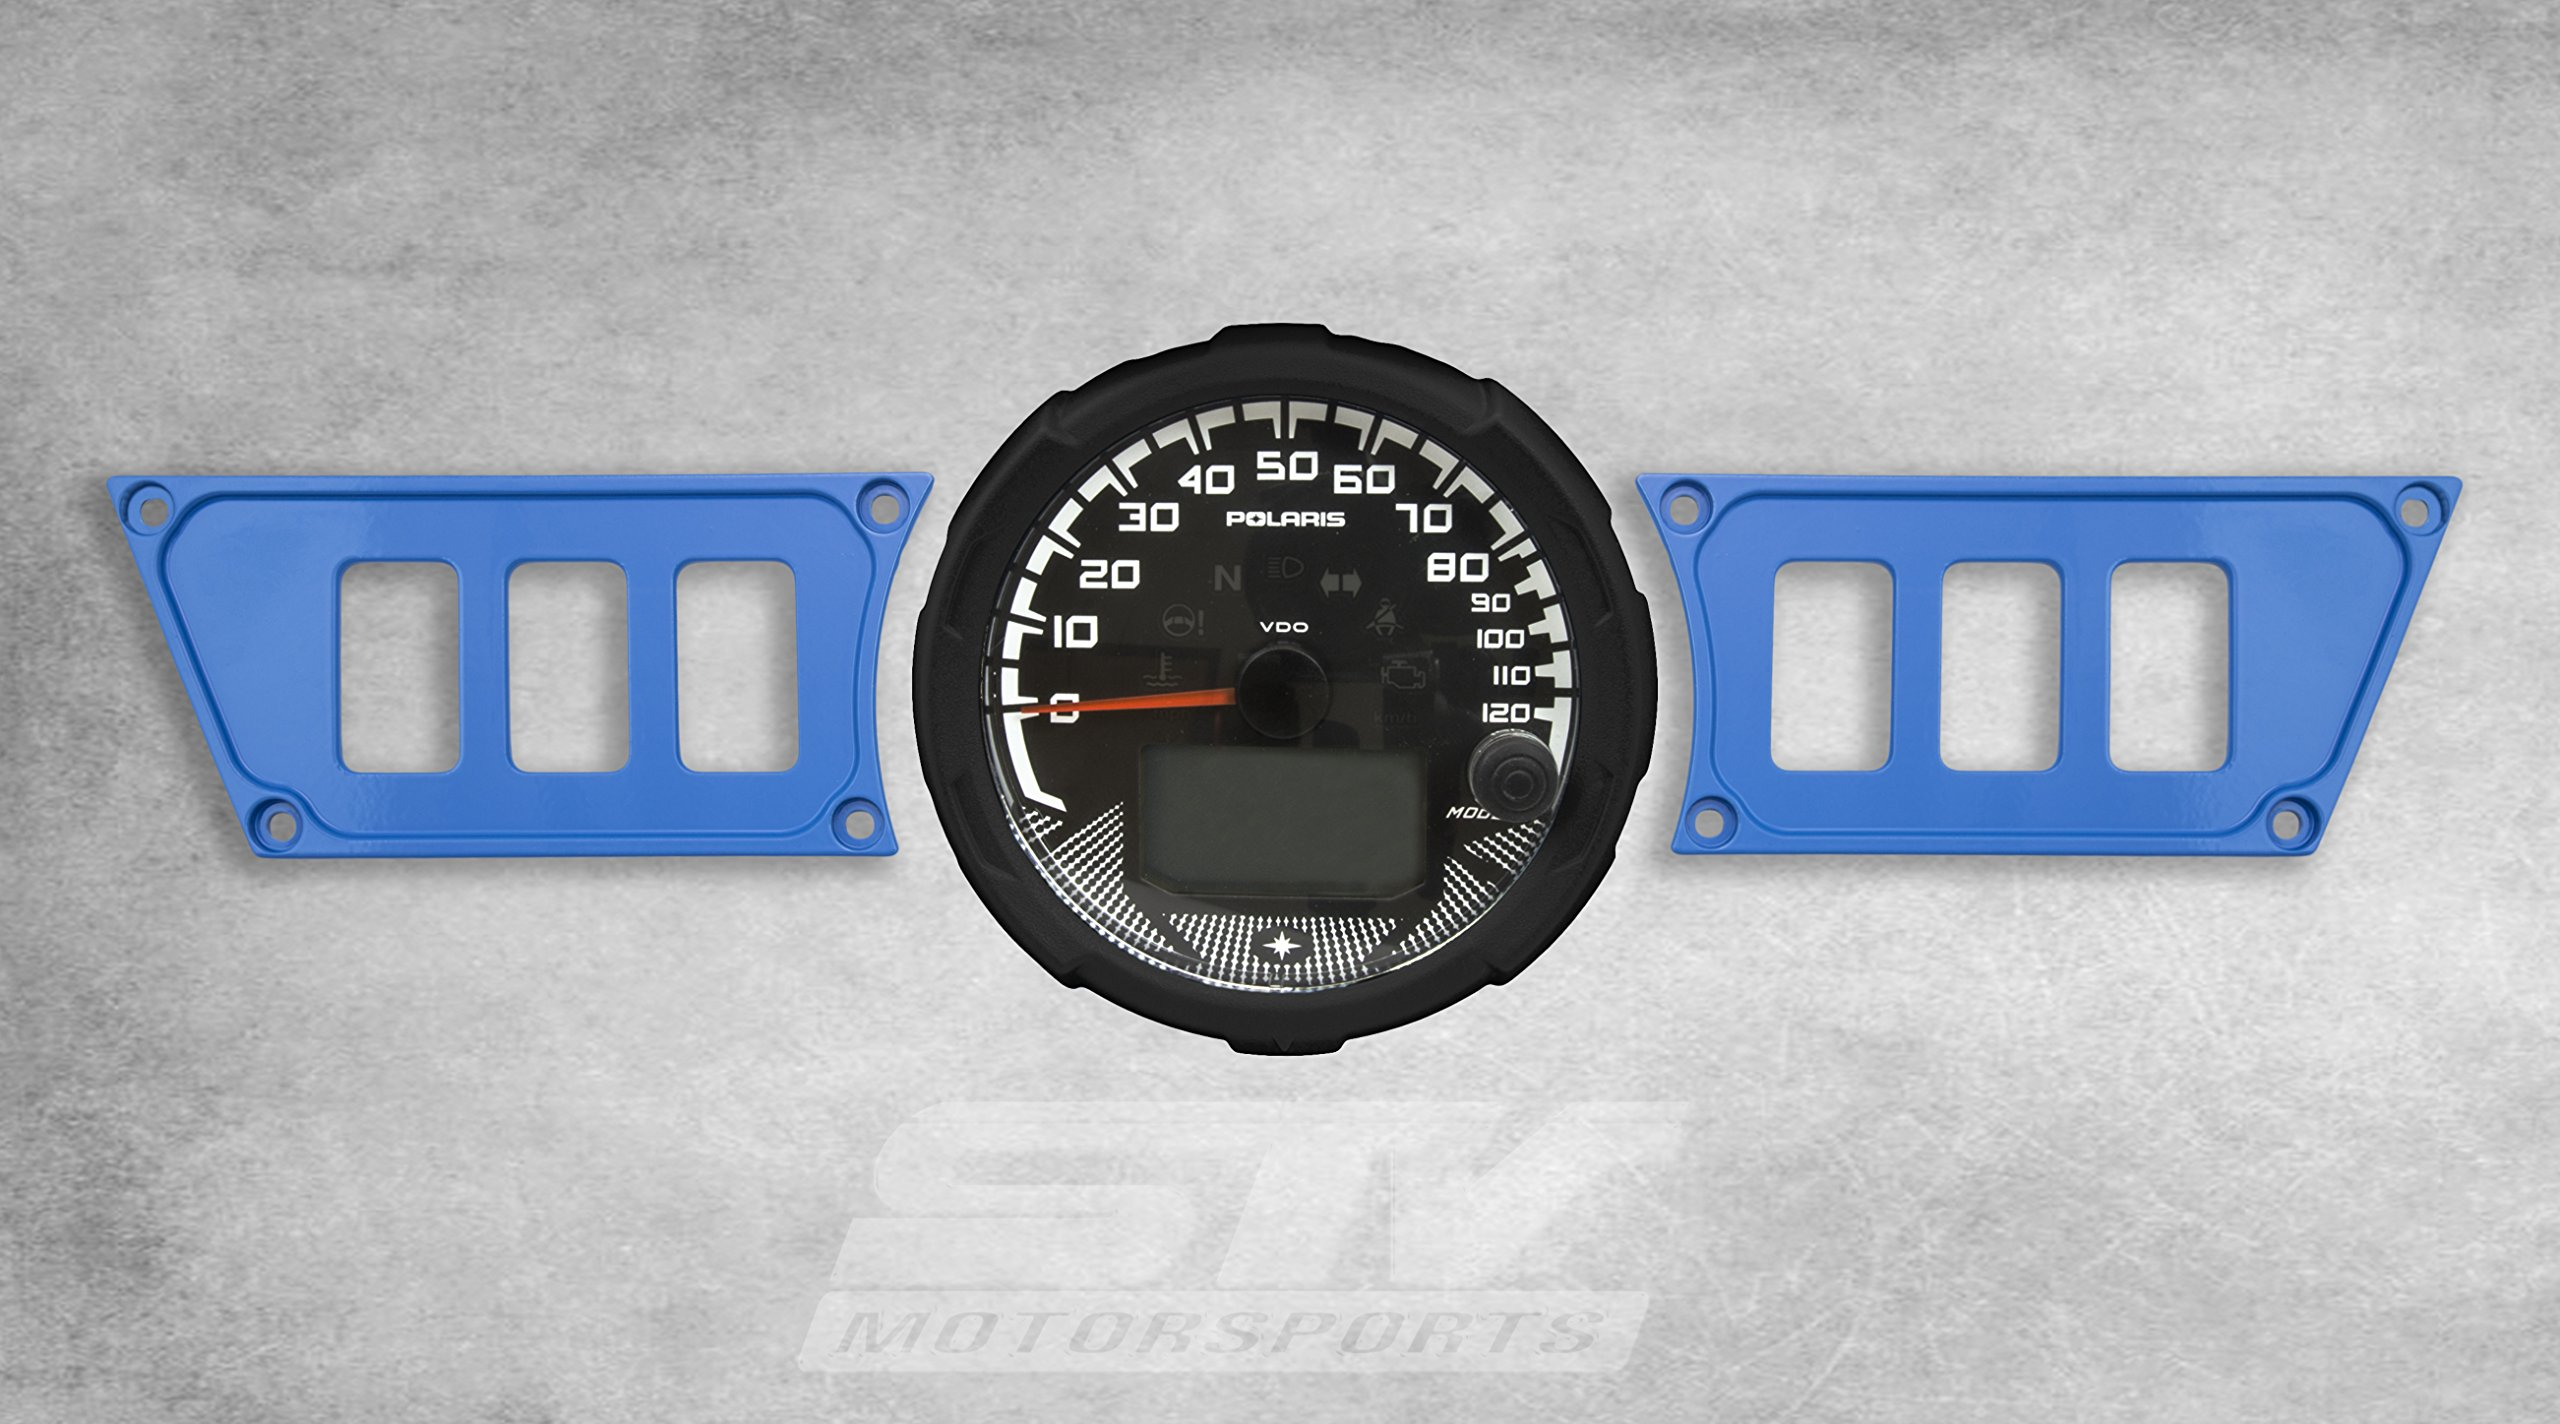 STV Motorsports Custom Aluminum Blue Dash Panel for Polaris RZR XP 1000 with 6 Switch Openings (no switches included)